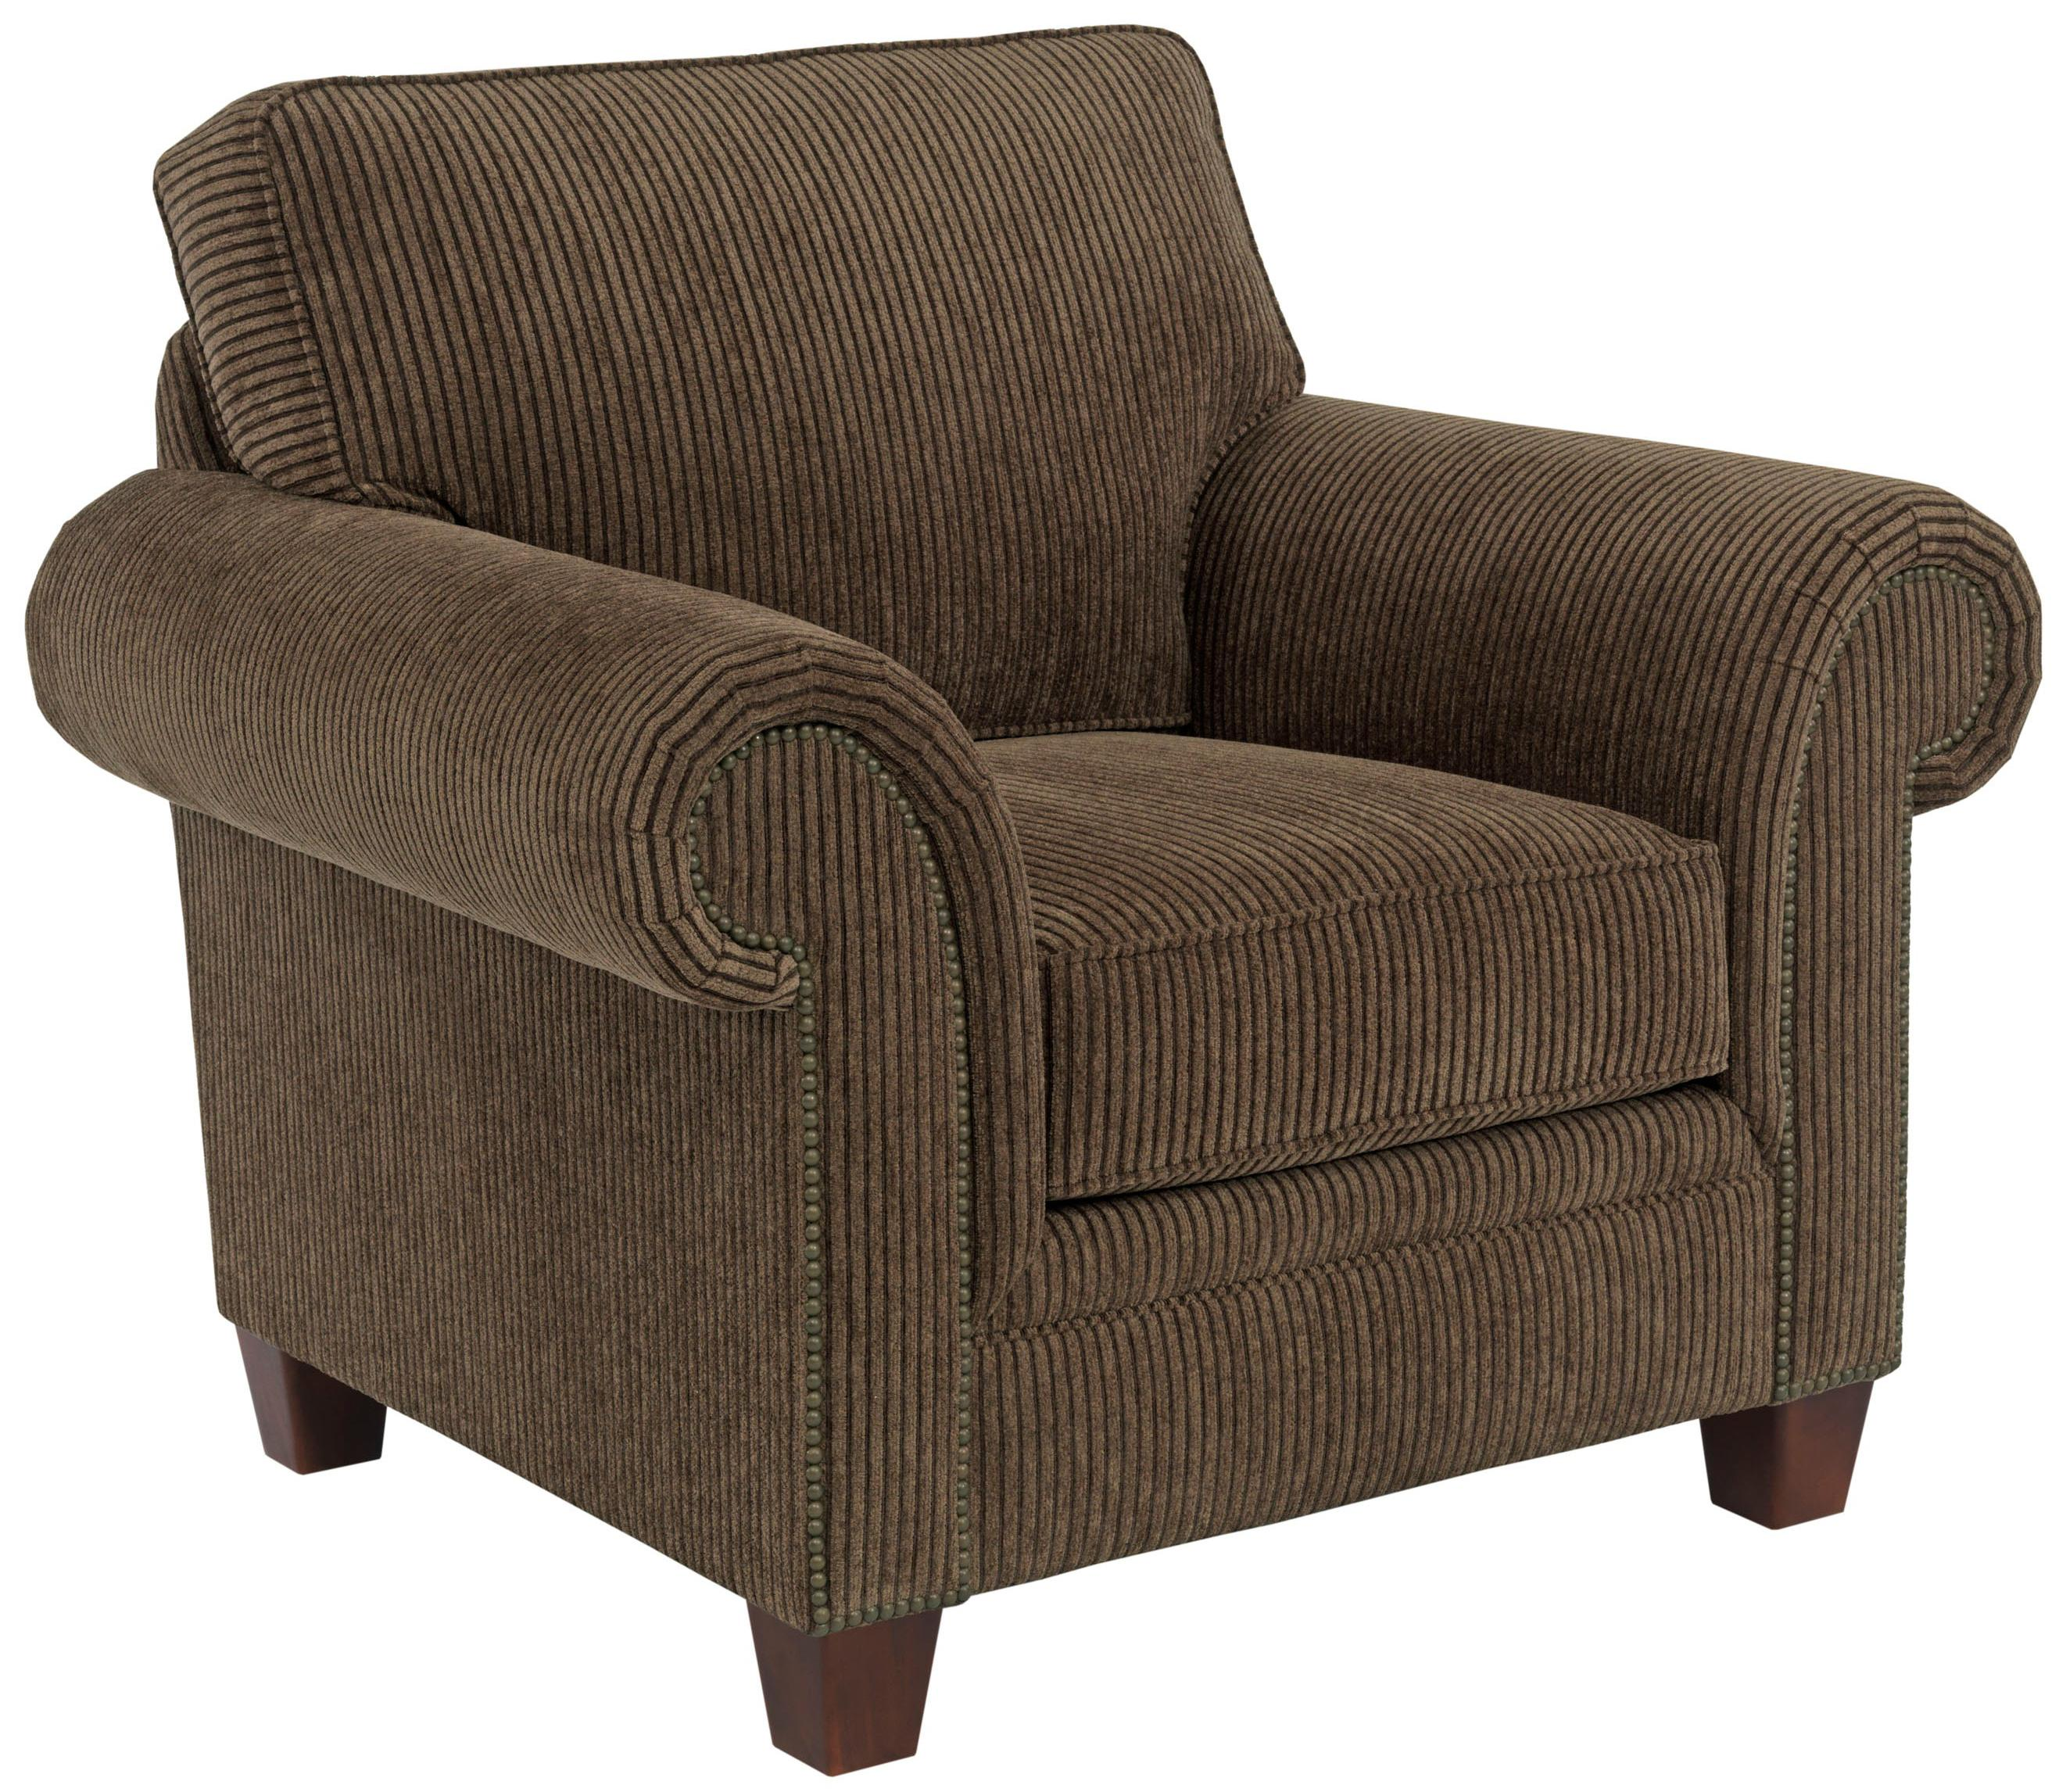 Broyhill Furniture Travis 7004 0 Transitional Upholstered Arm Chair With Rolled Arms John V